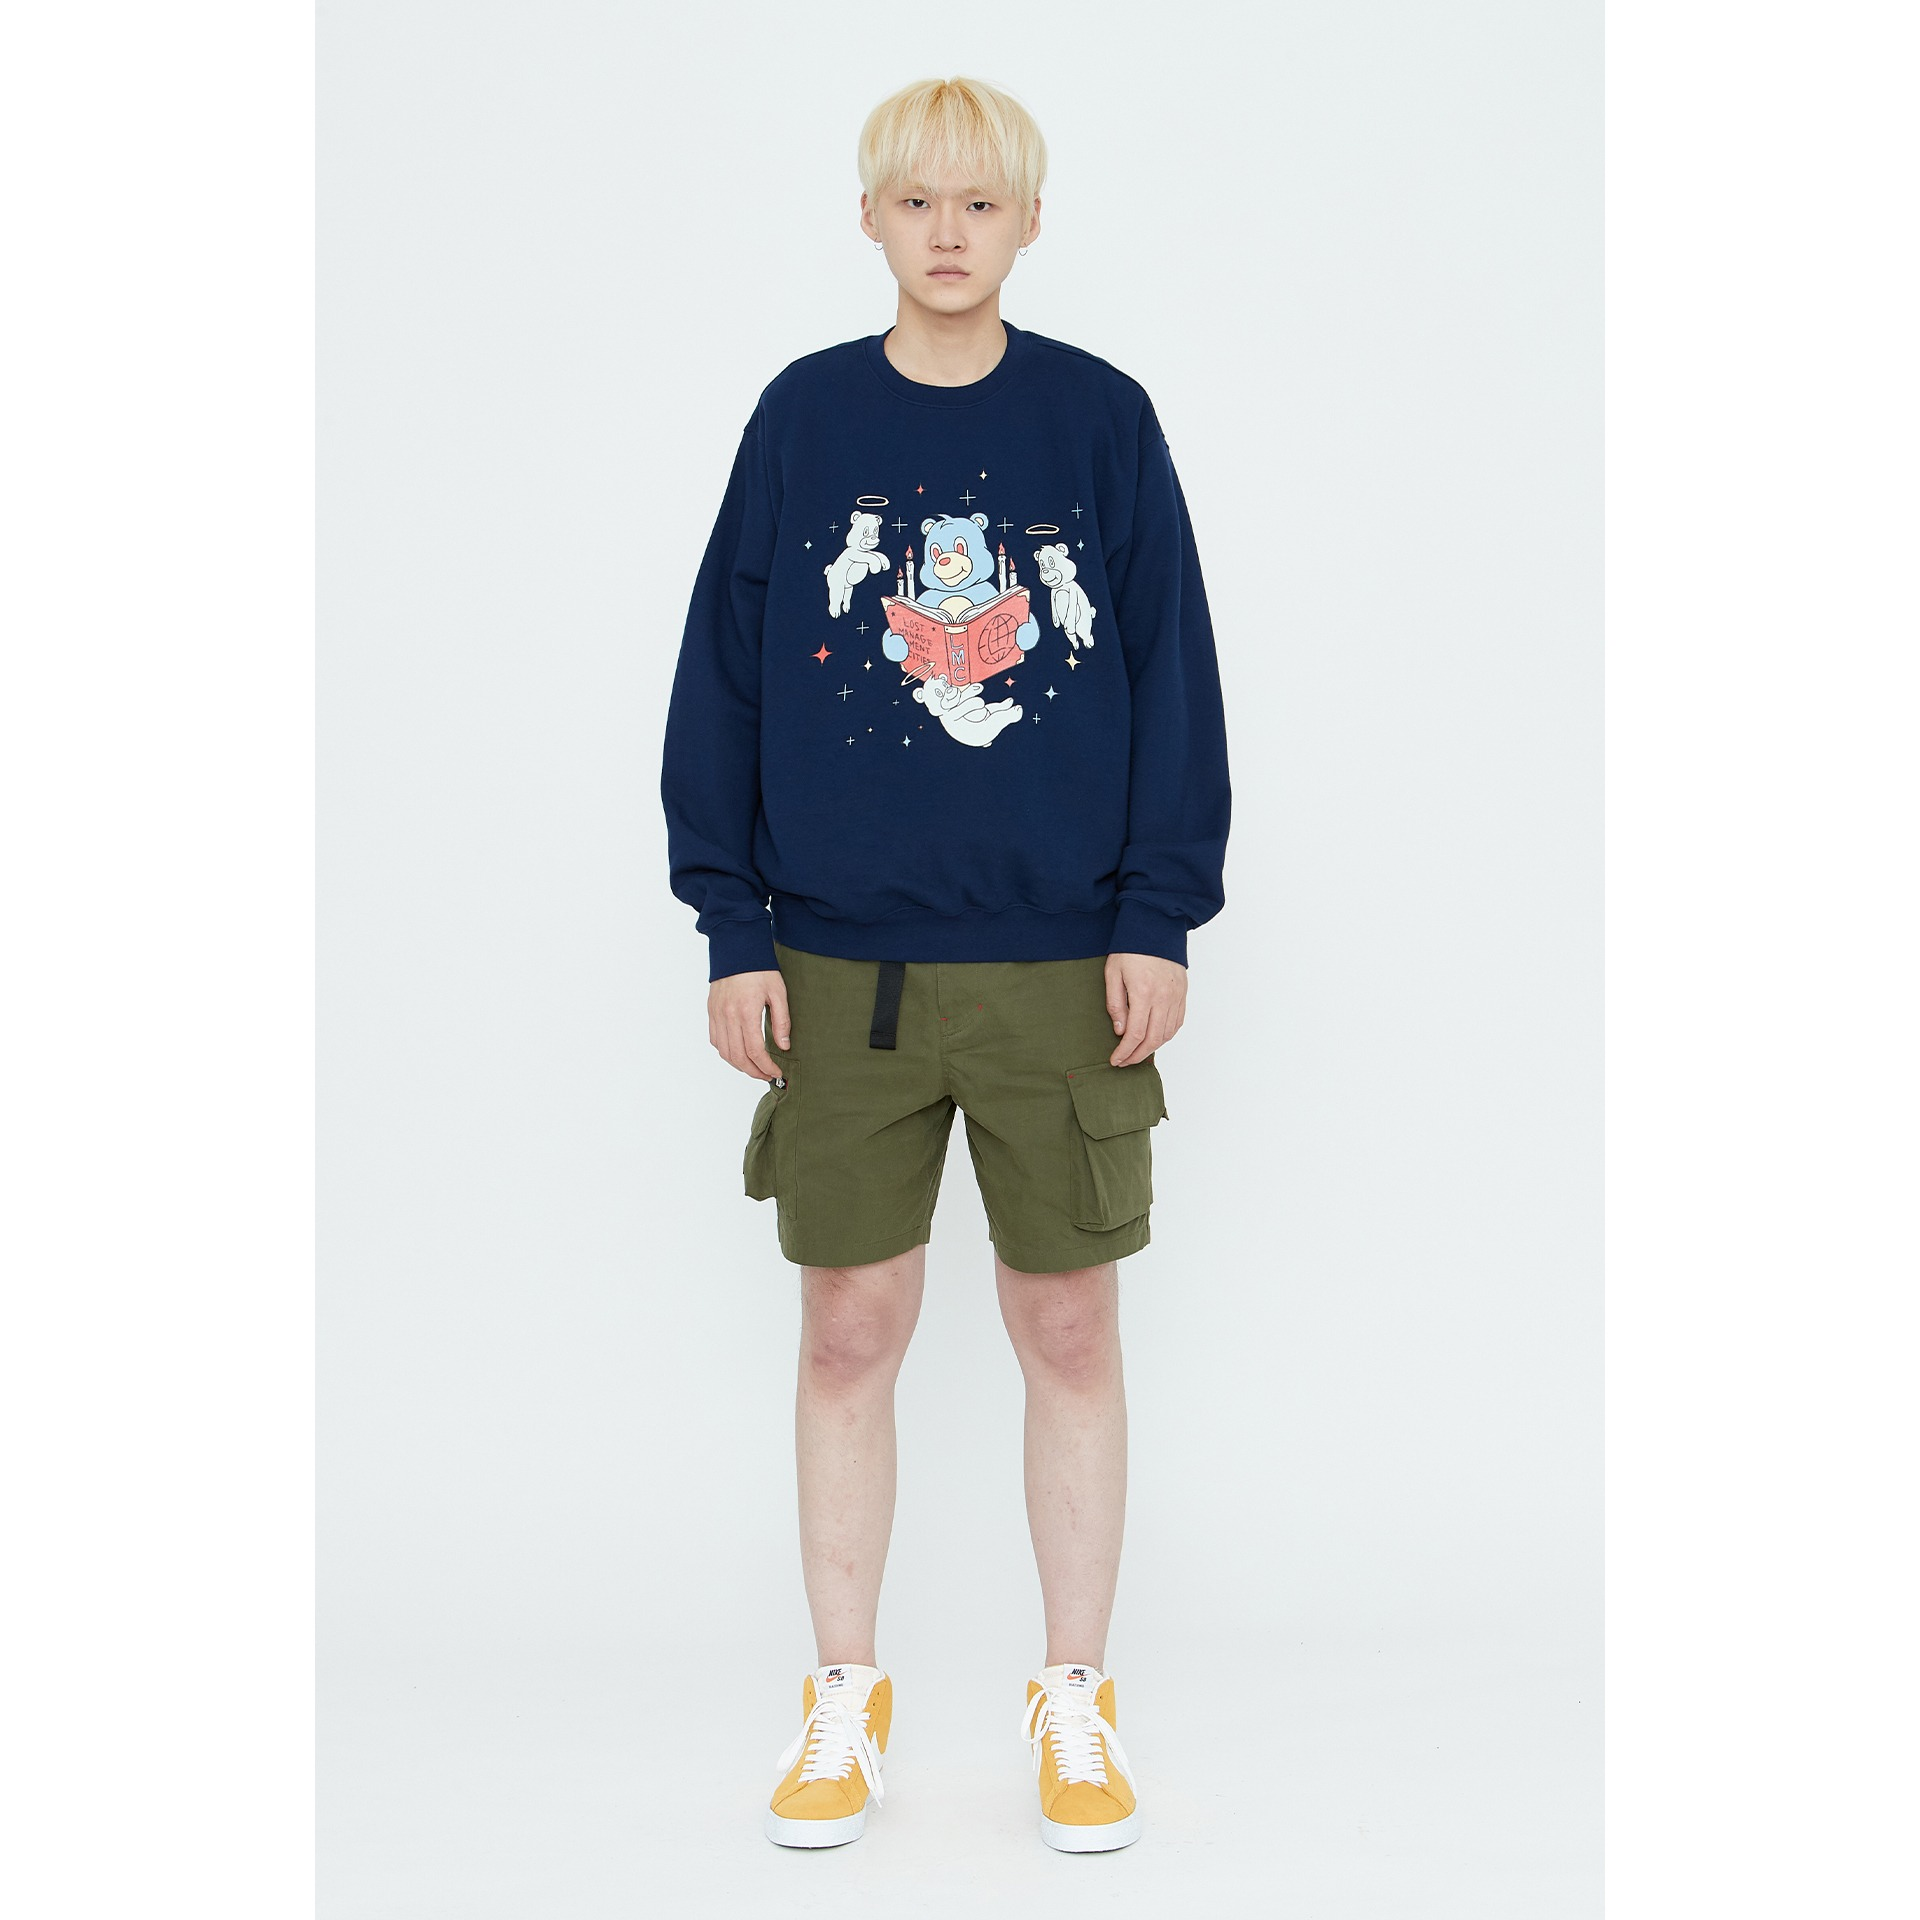 LMC REBIRTH BEAR SWEATSHIRT navy